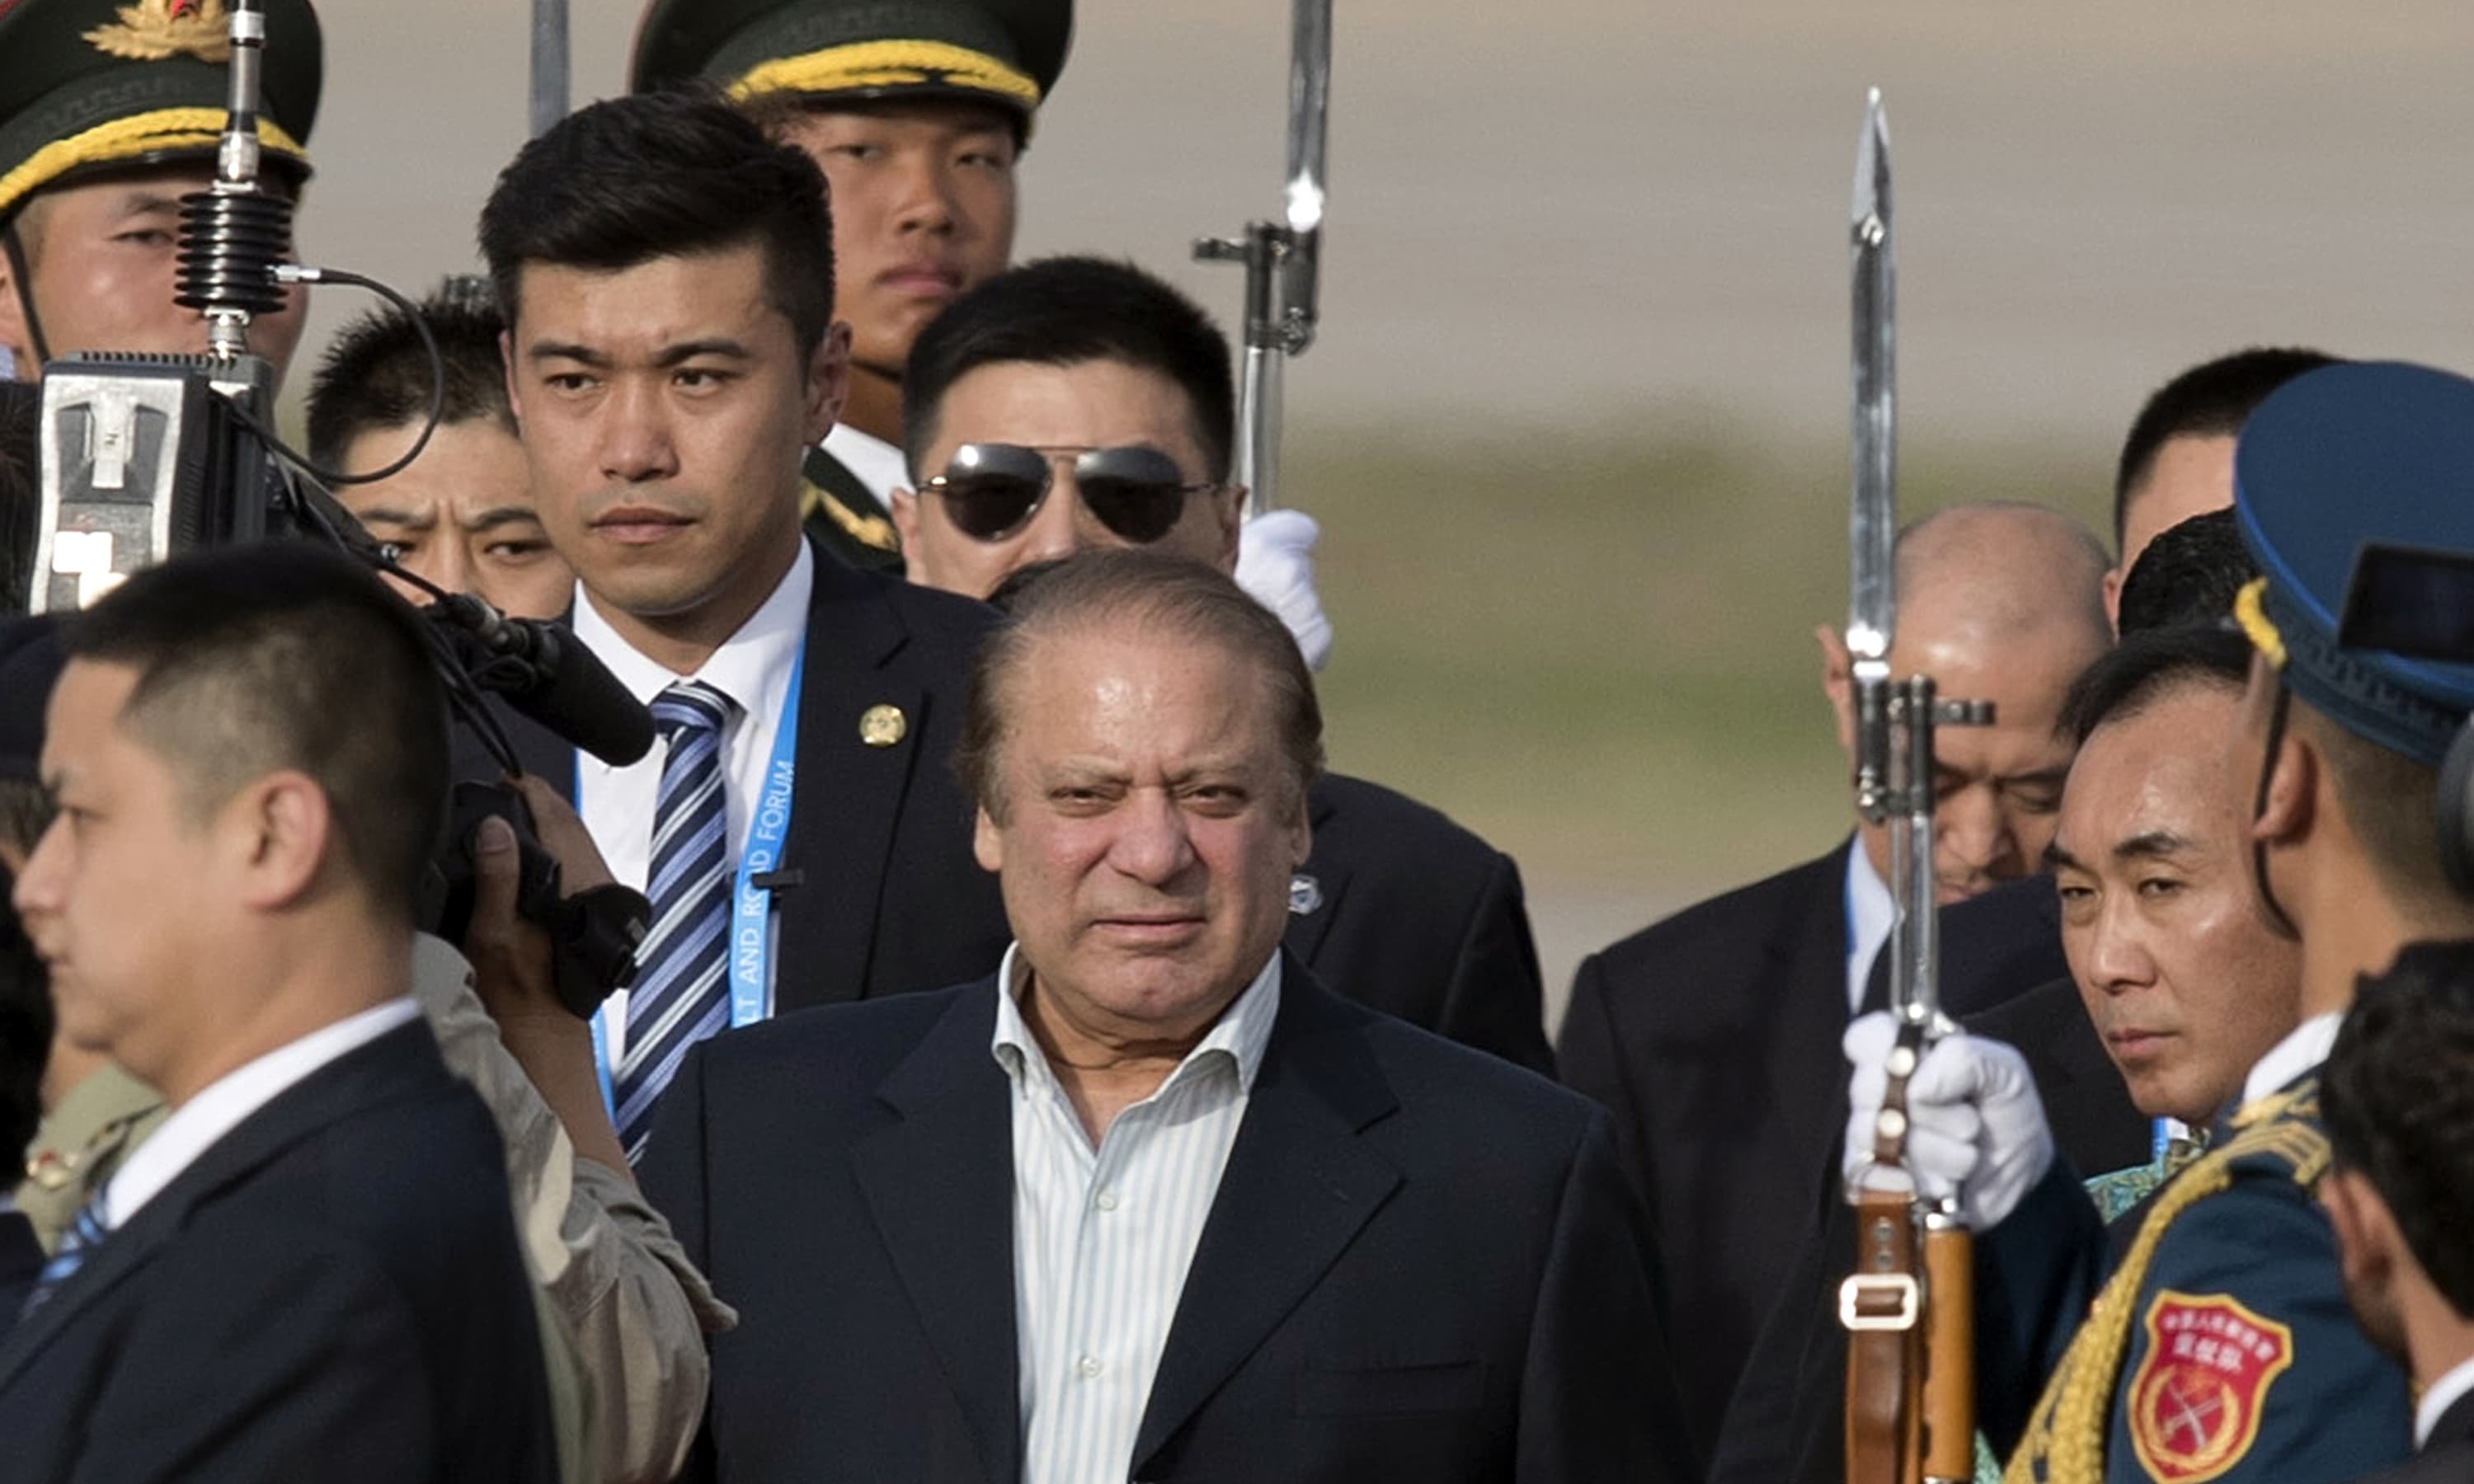 PM Nawaz Sharif arrives at Beijing's International Airport ahead of the Belt and Road Forum in Beijing. —AP